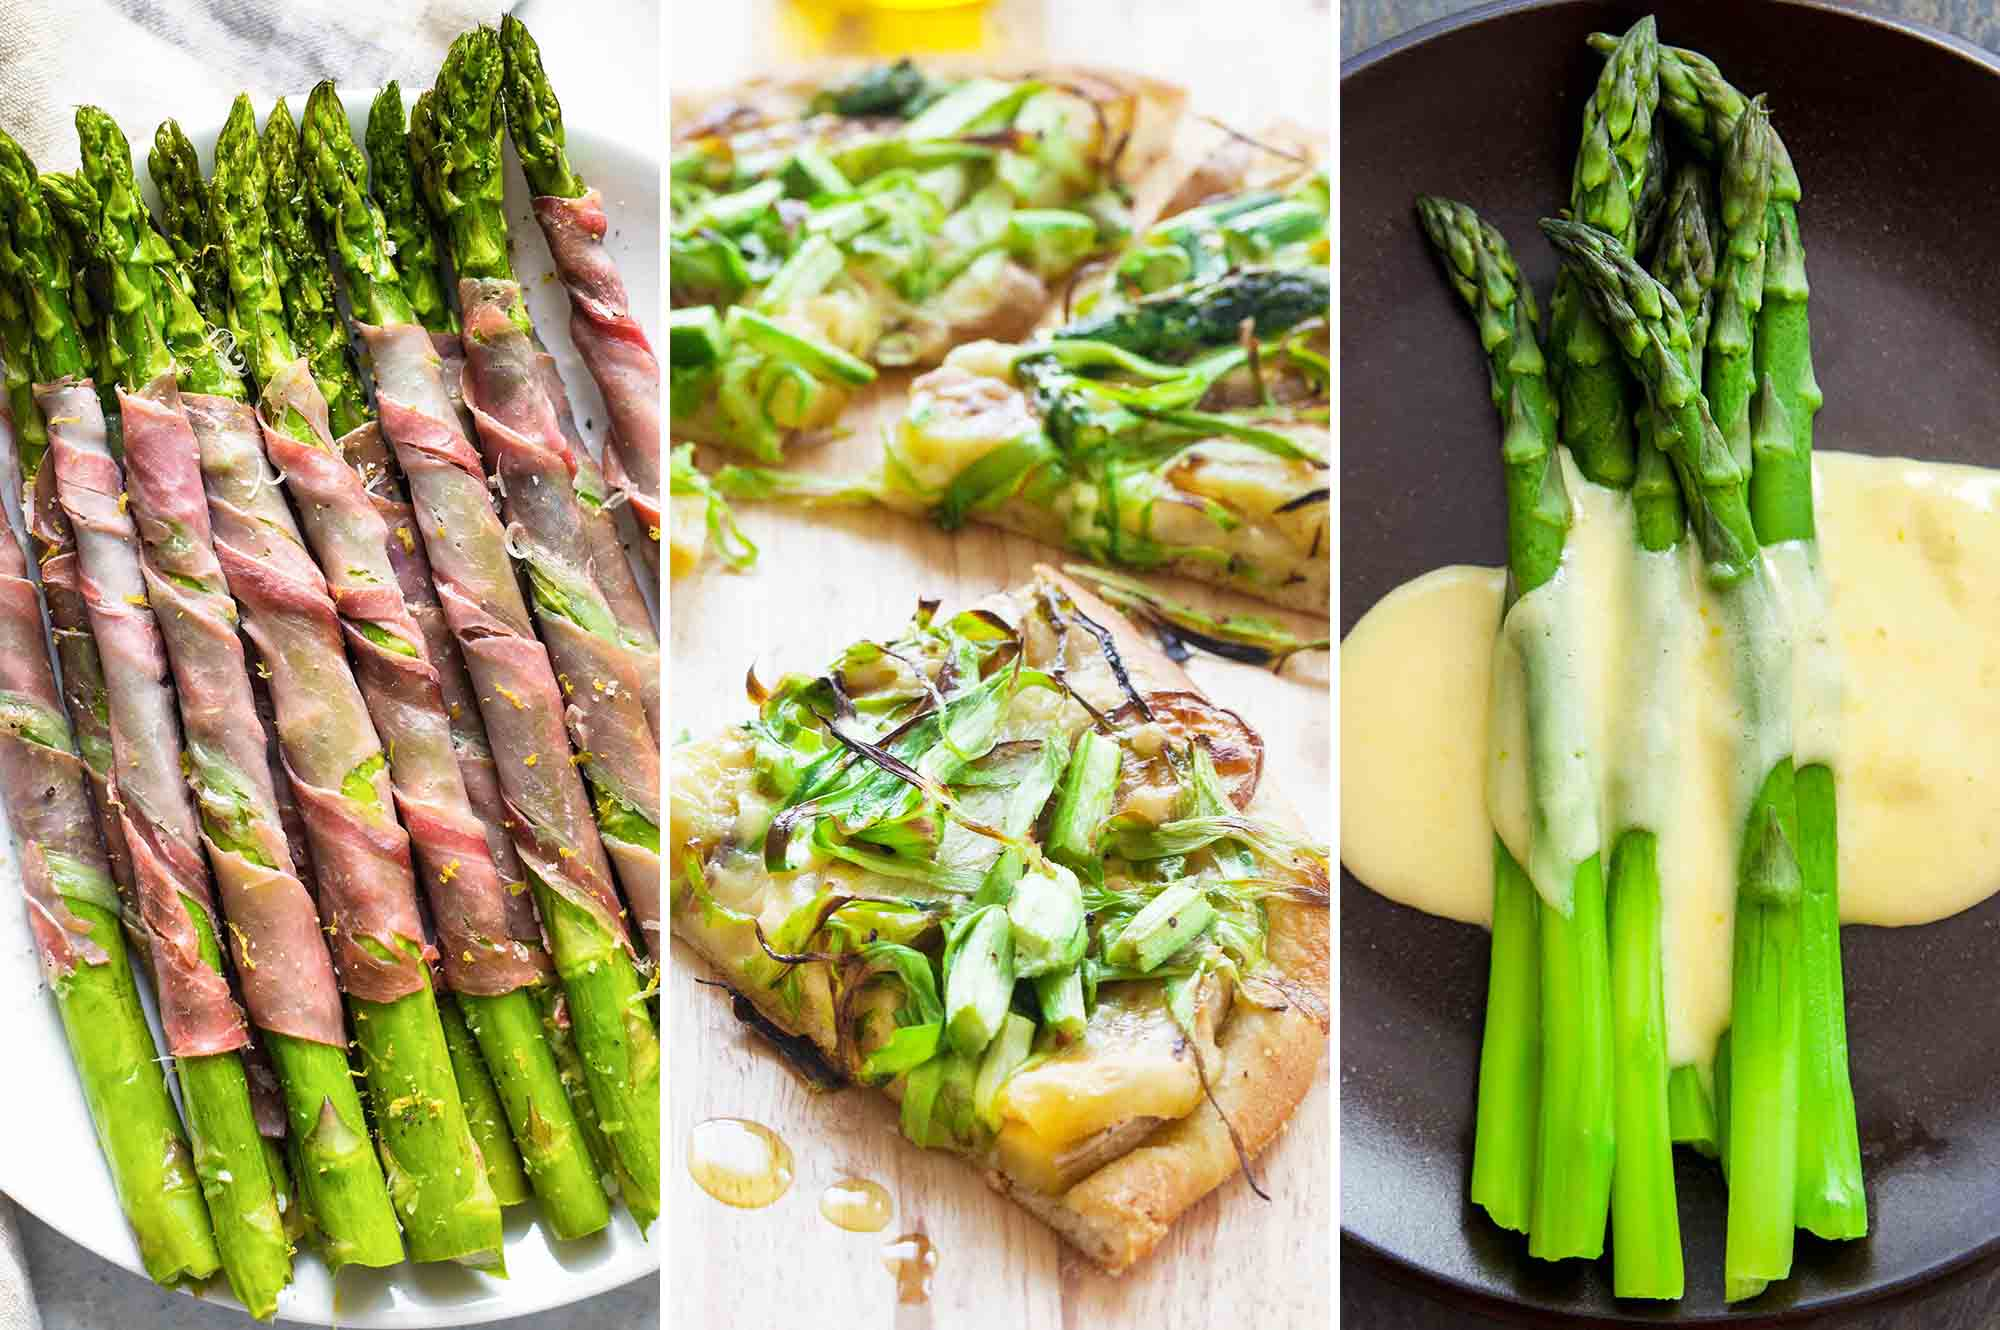 8 Best Asparagus Recipes to Make this Spring